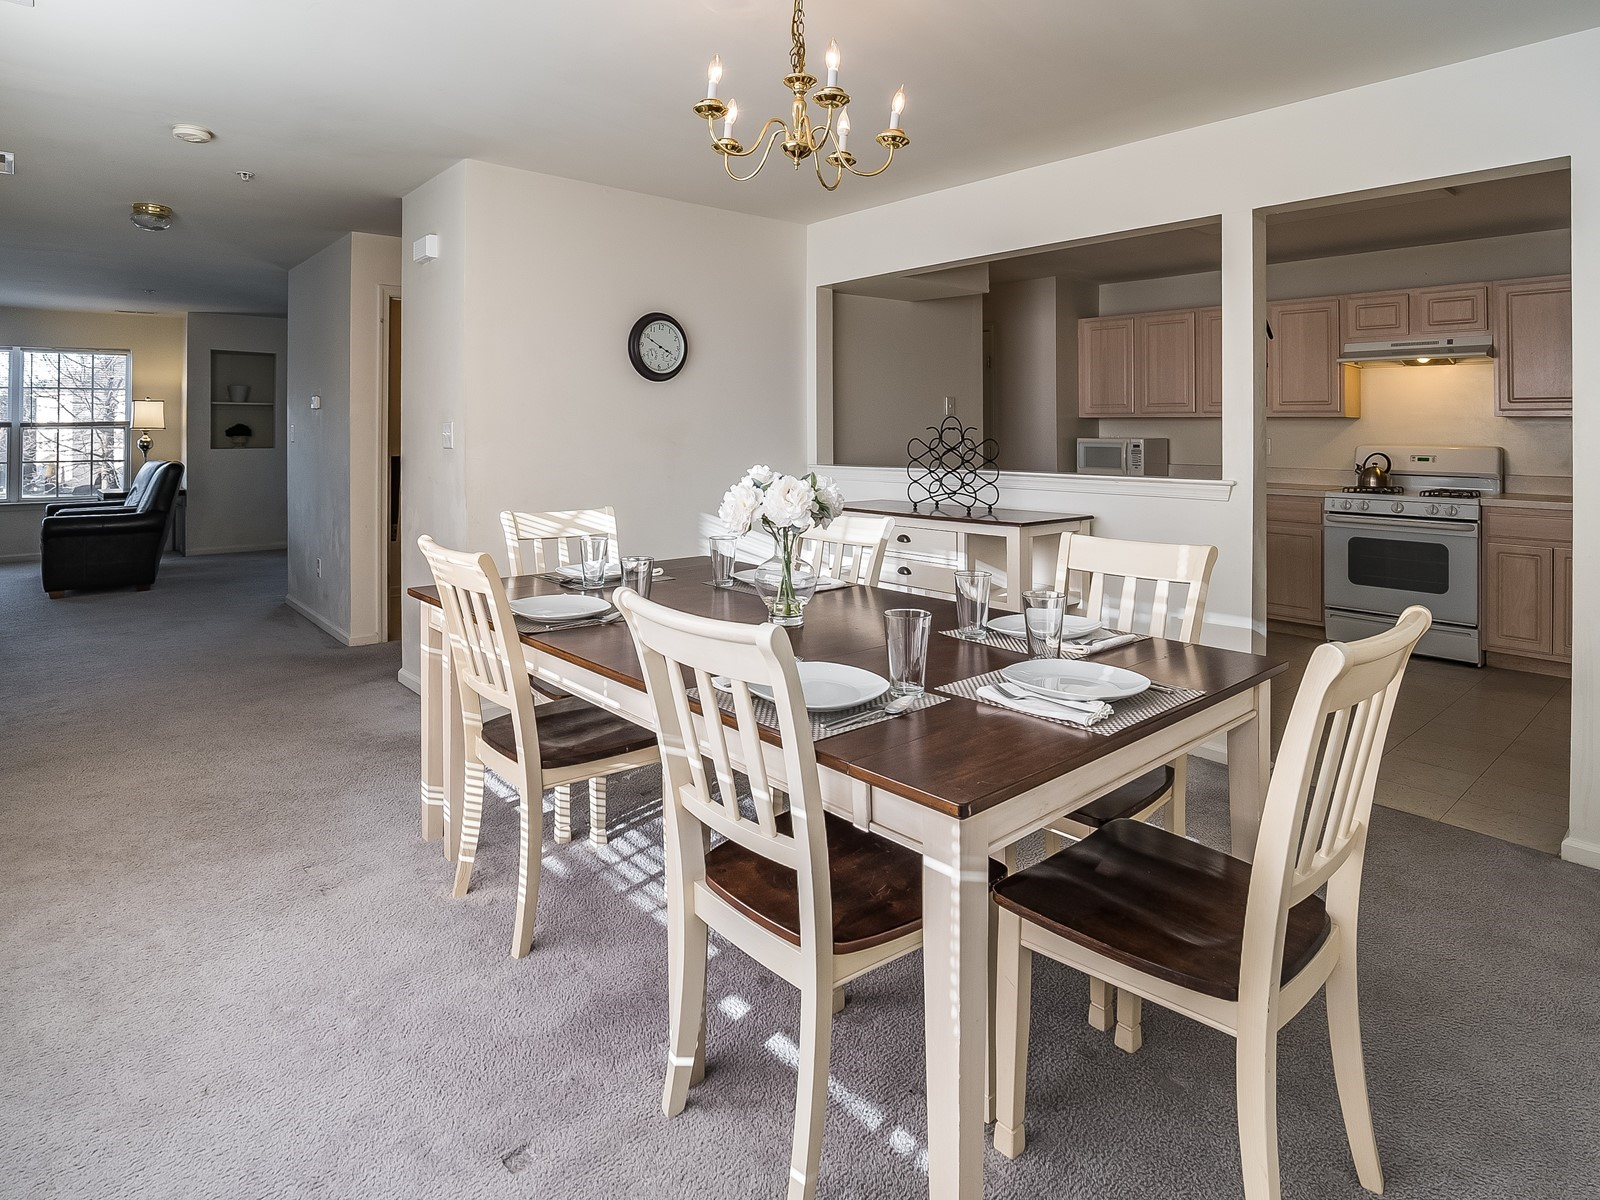 North Brunswick 430 Furnished Rental Dining room with table for 6 and view into kitchen